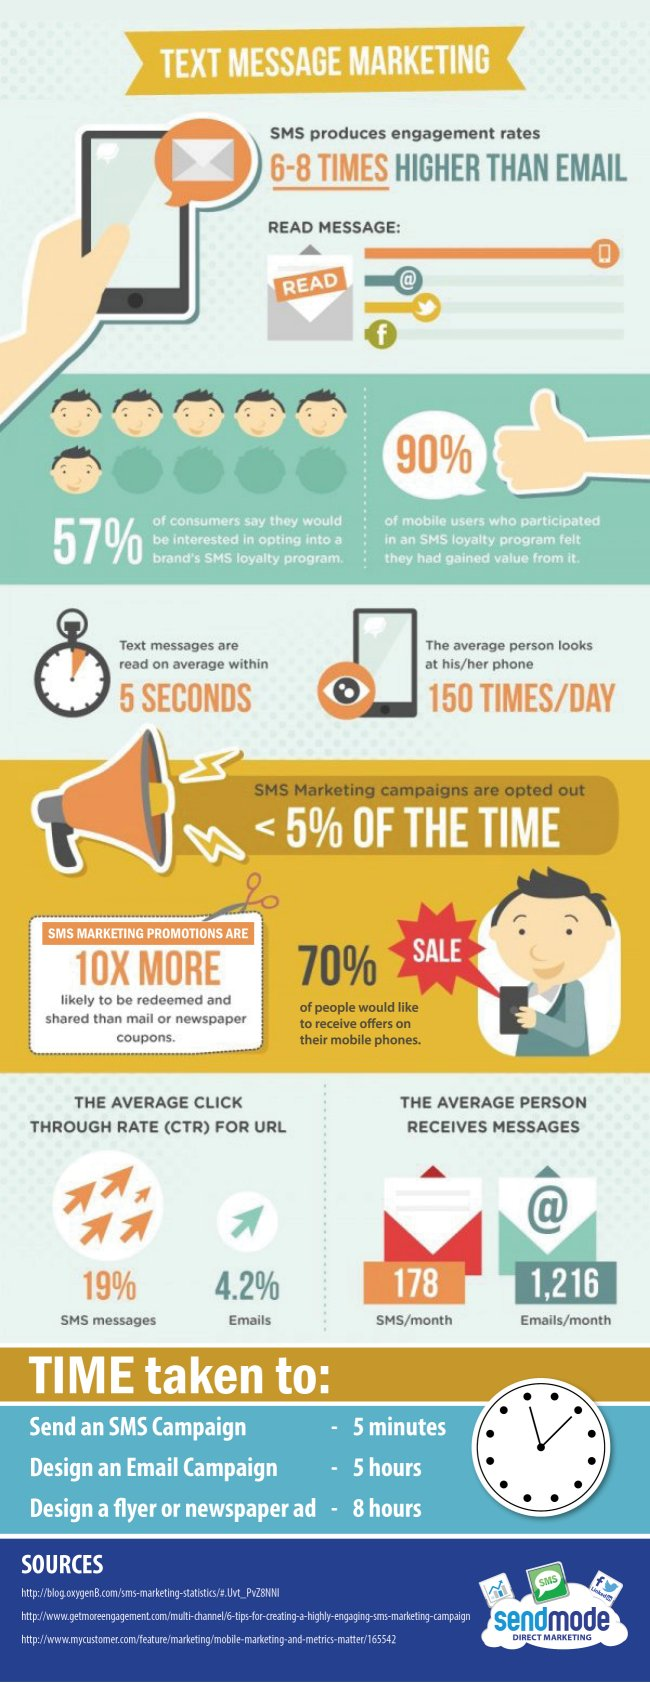 Why you should use SMS Marketing